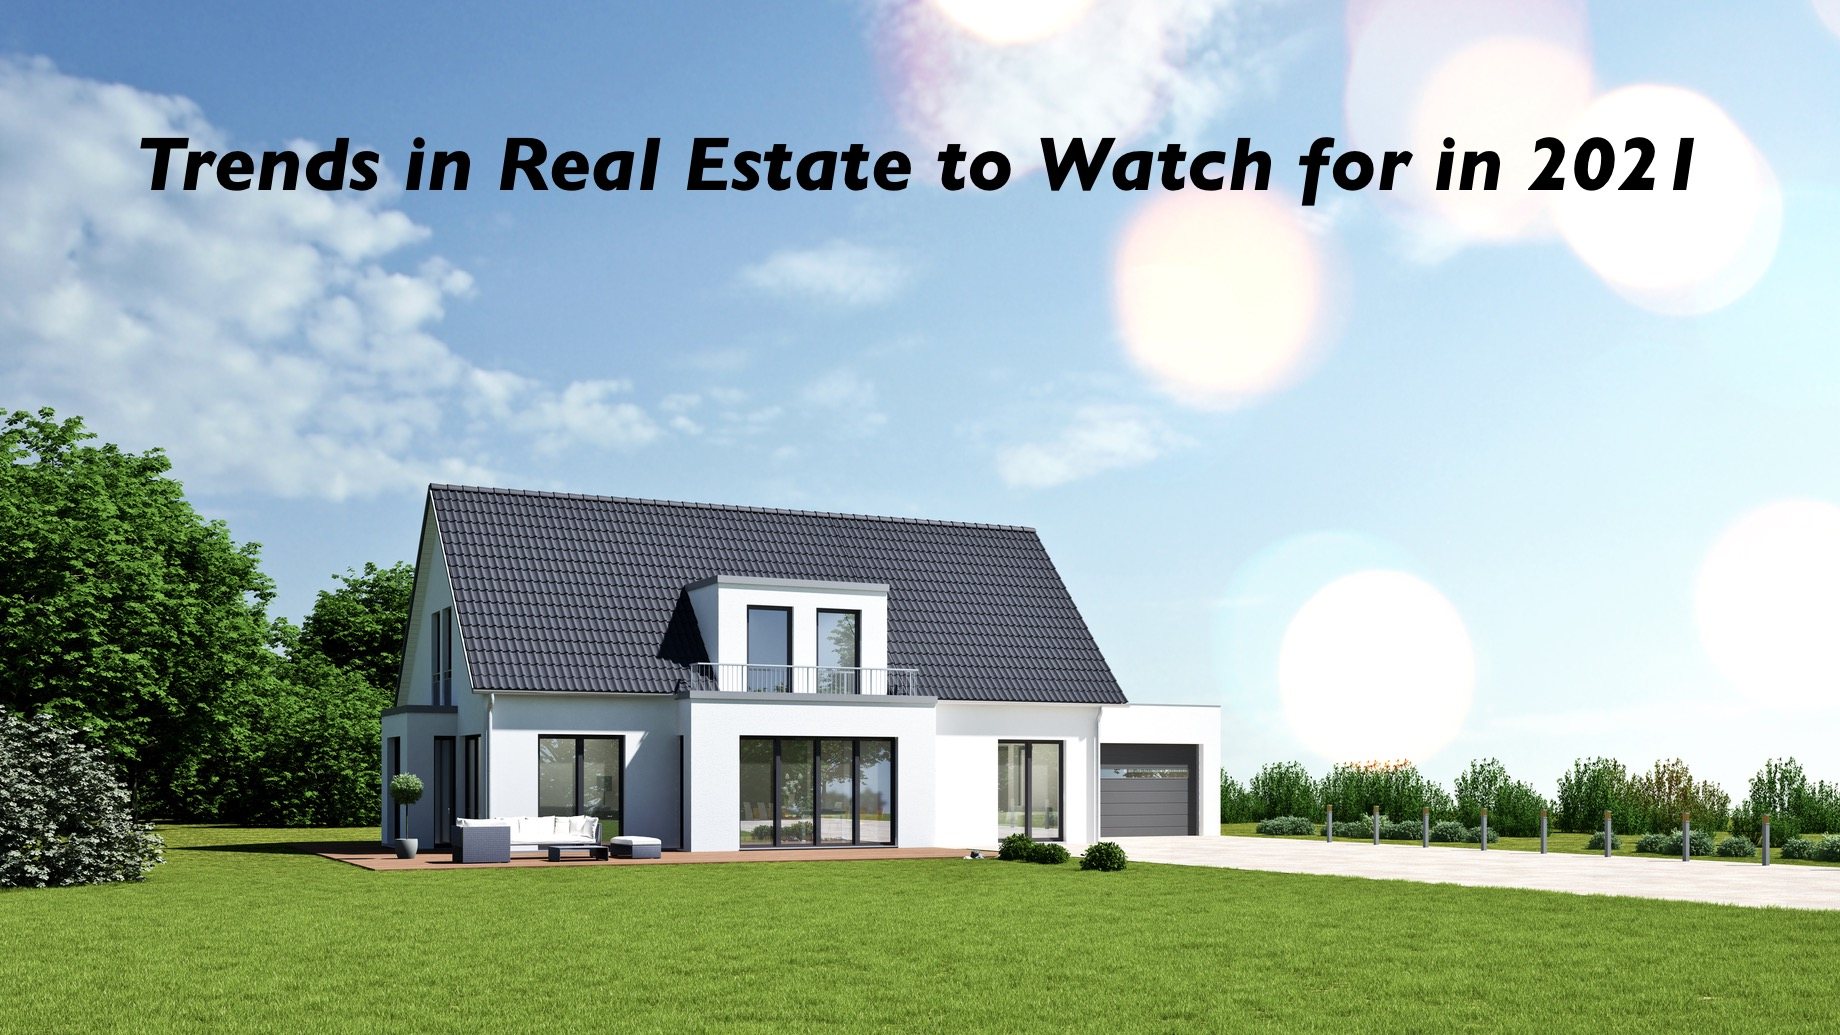 Trends in Real Estate to Watch for in 2021